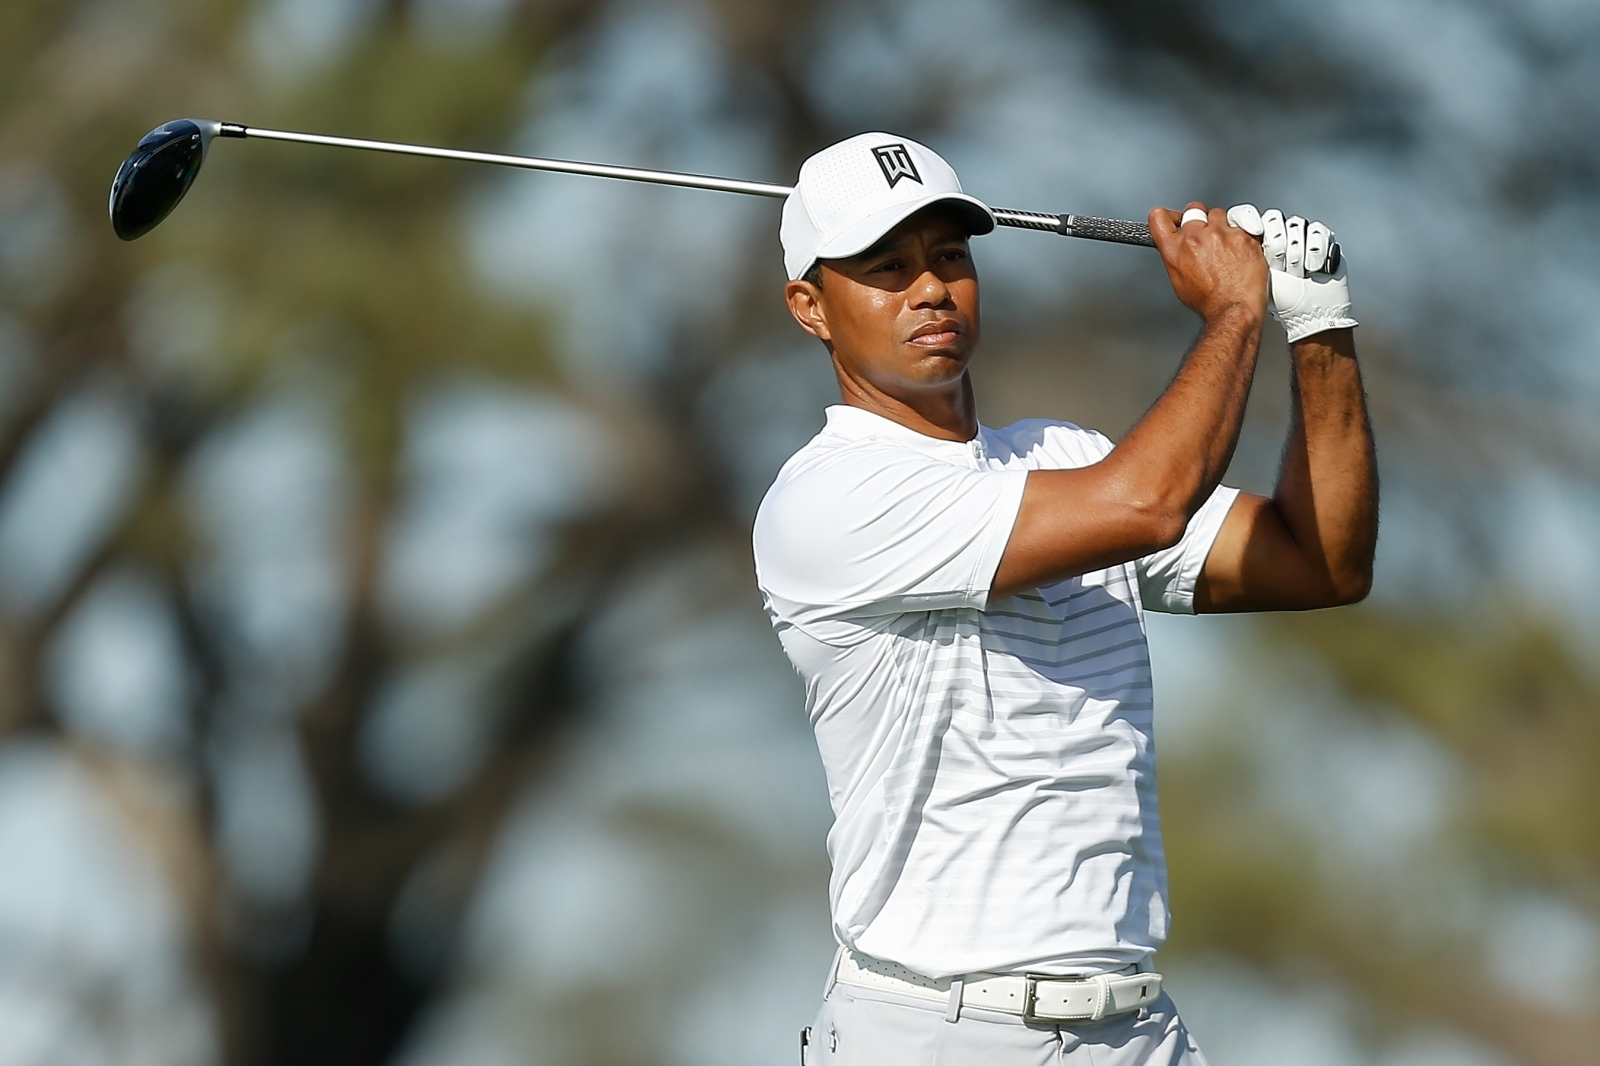 Tiger Woods returns to Riviera Country Club for Genesis Open